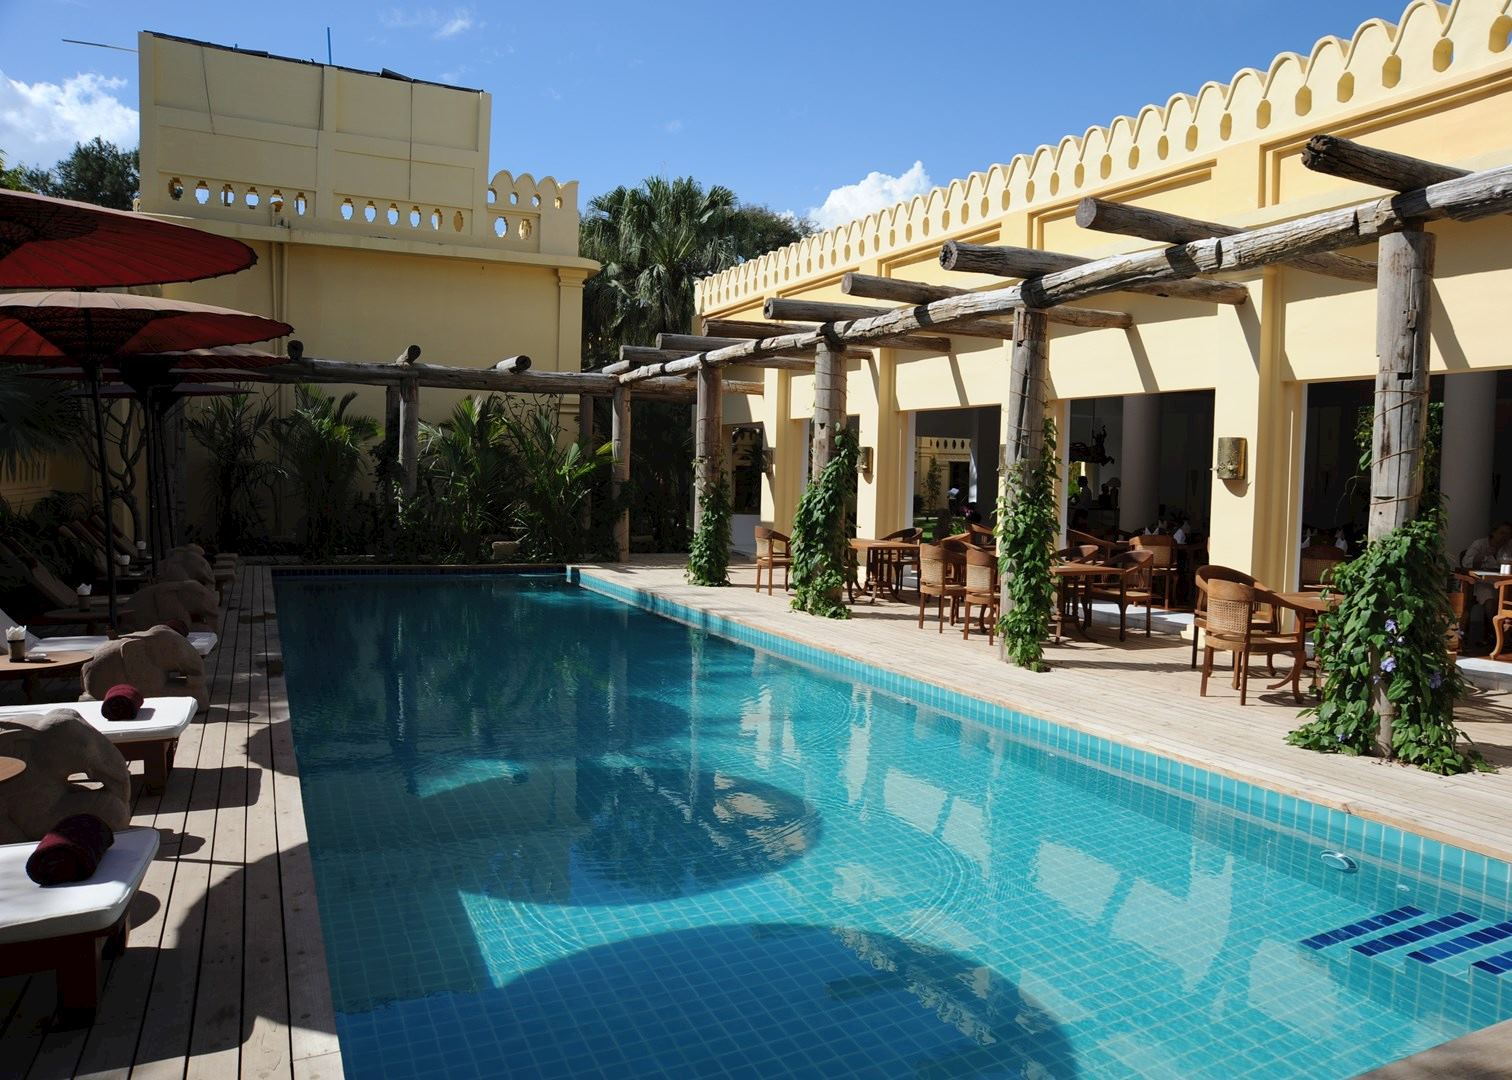 Areindmar hotel hotels in bagan audley travel - Explorer hotel paris swimming pool ...